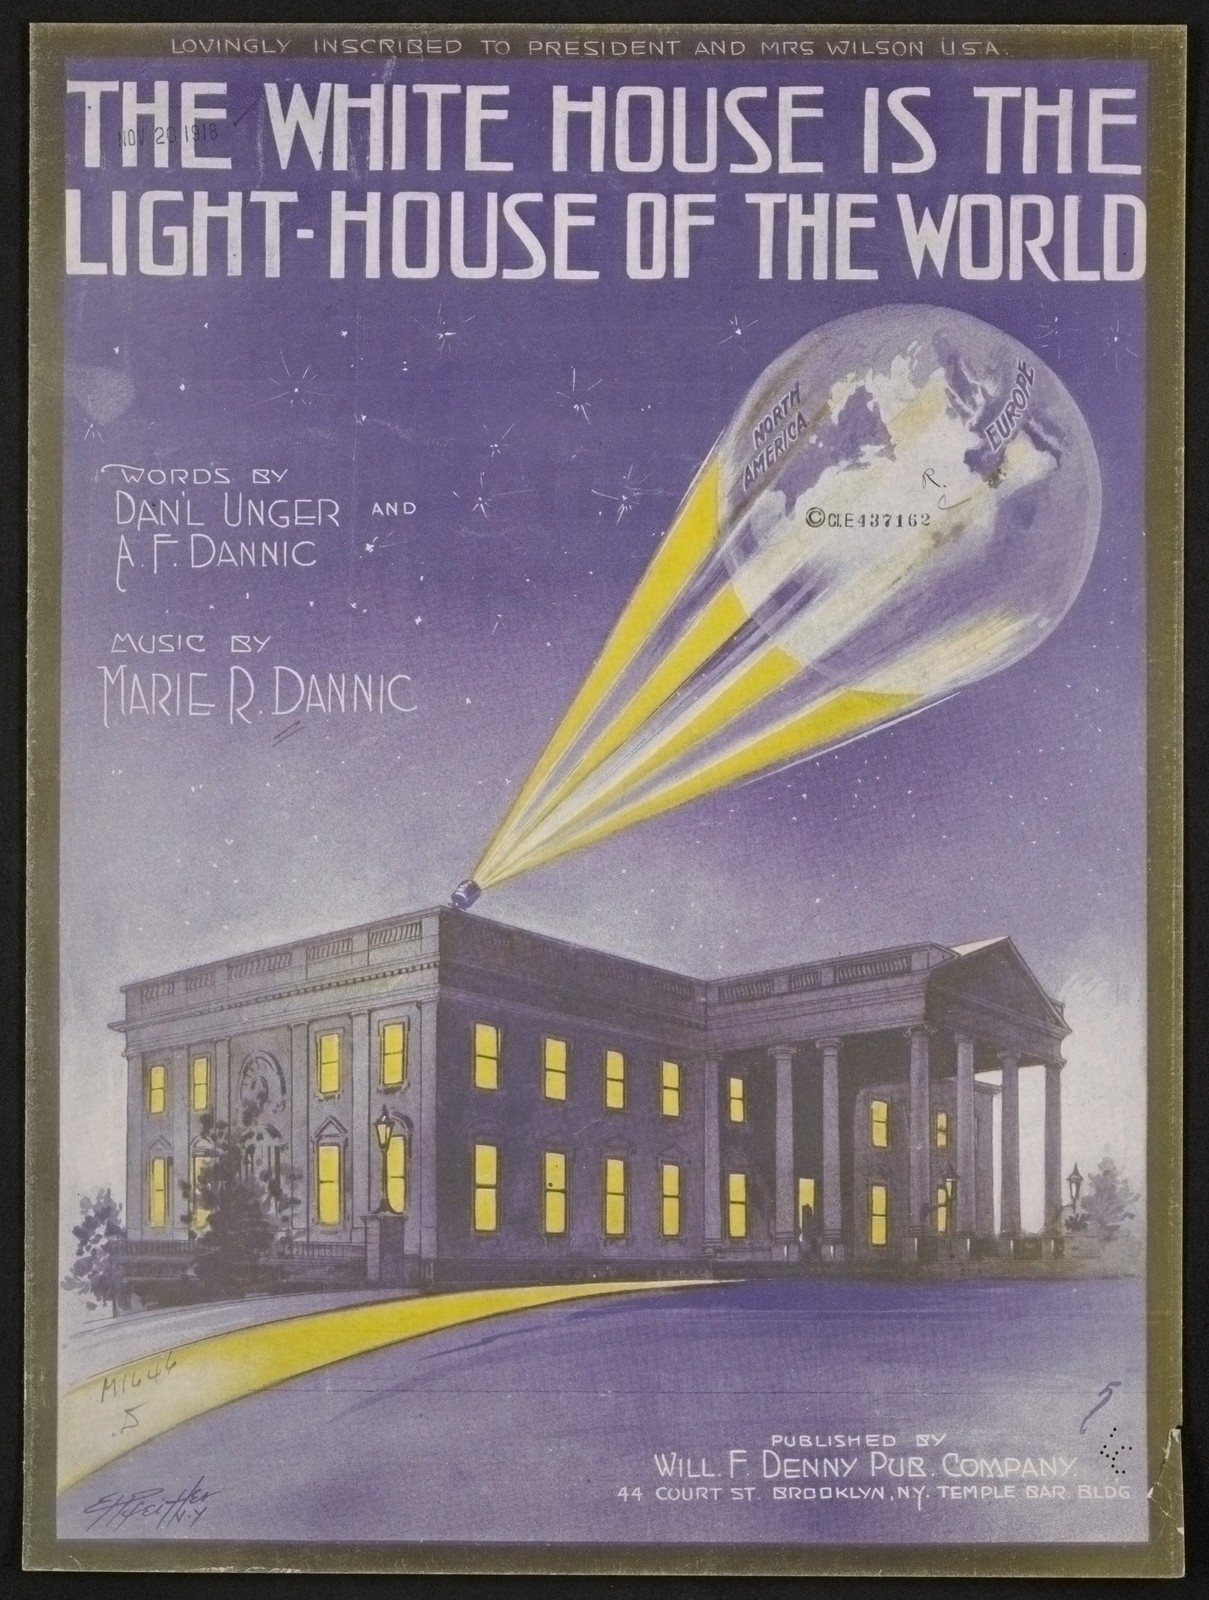 The  White House is the light-house of the world